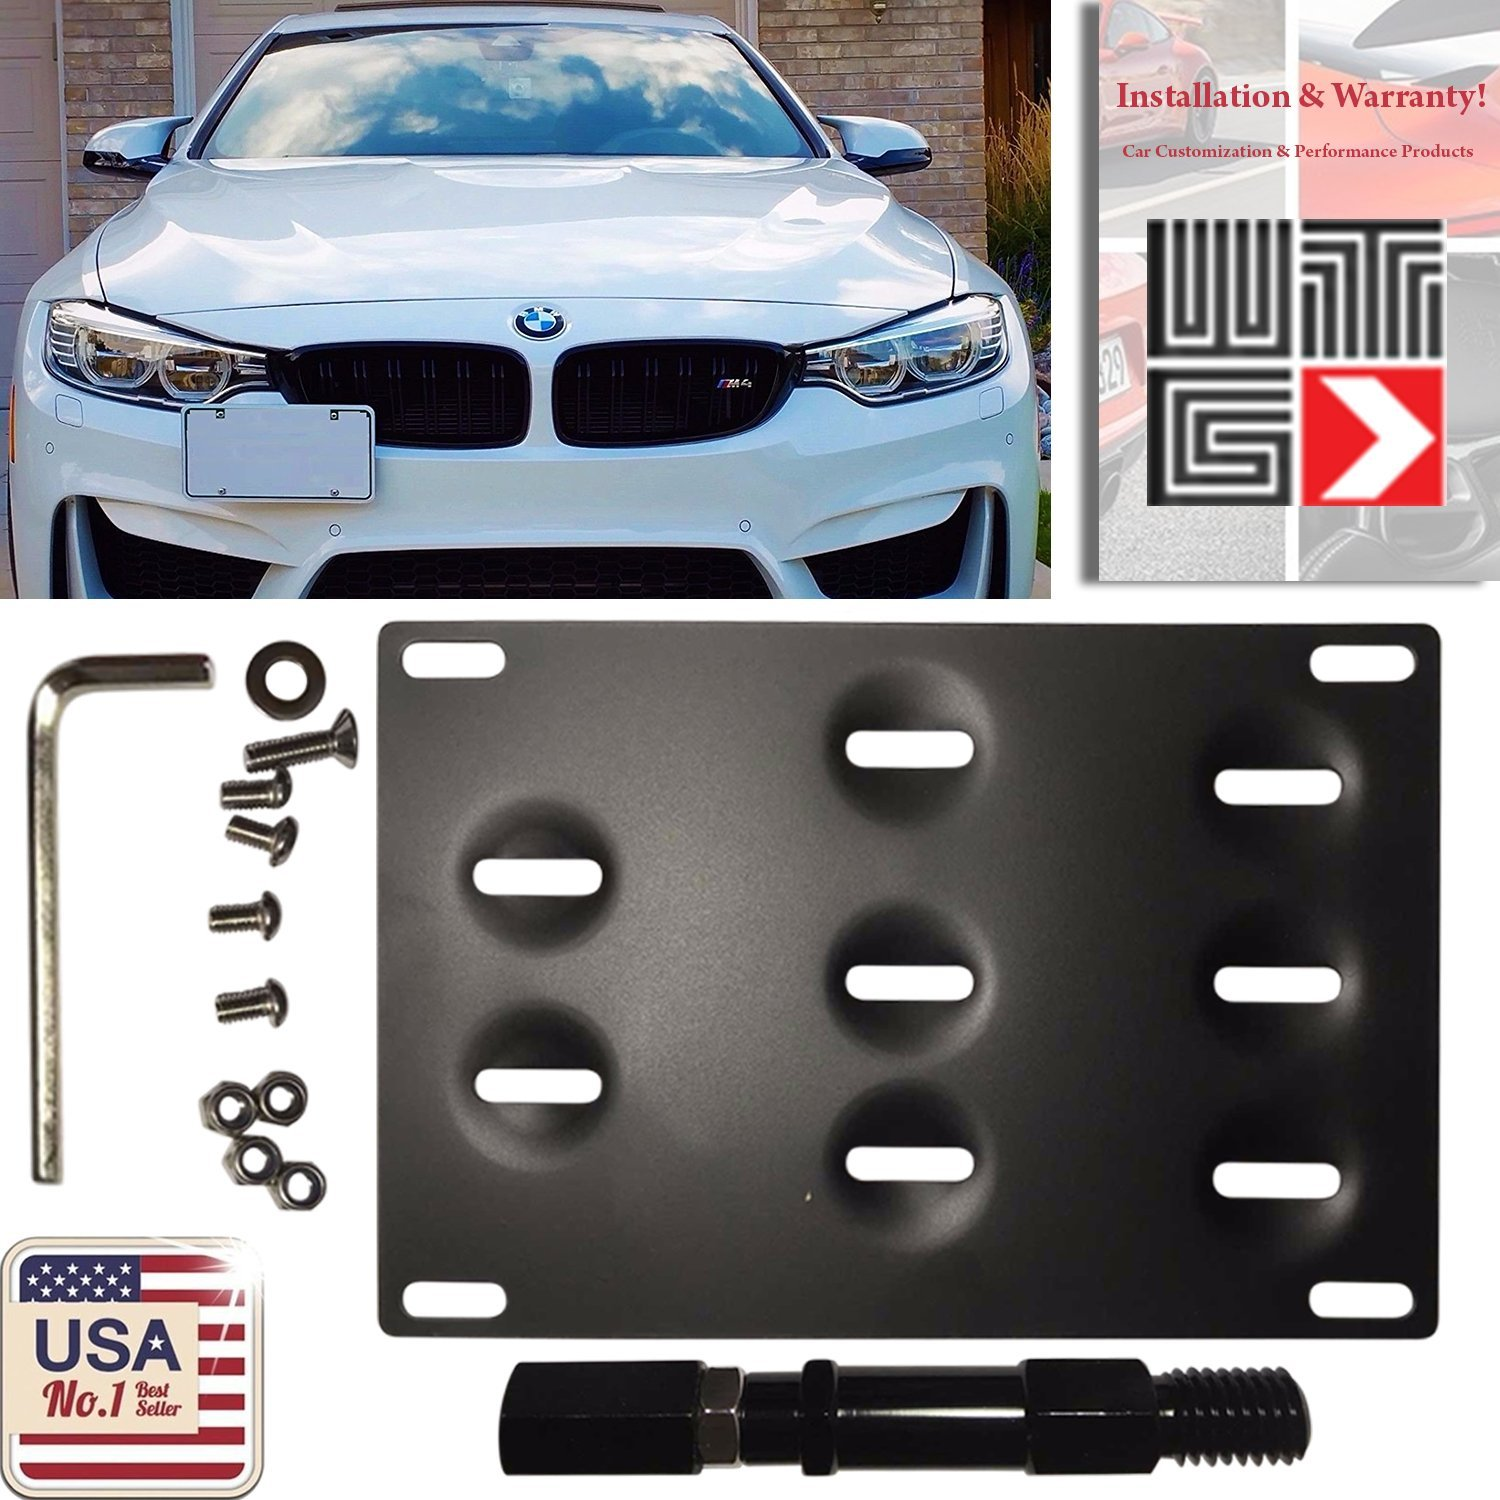 WTG Front Bumper Tow Hook Hole Adapter License Plate Mounting Bracket BMW F-Series//F22//F30//F31//F32//F33//F36//F10//F11//F07//F25//F26//X3//X4//Z4//i3//2 3 4 5 Series